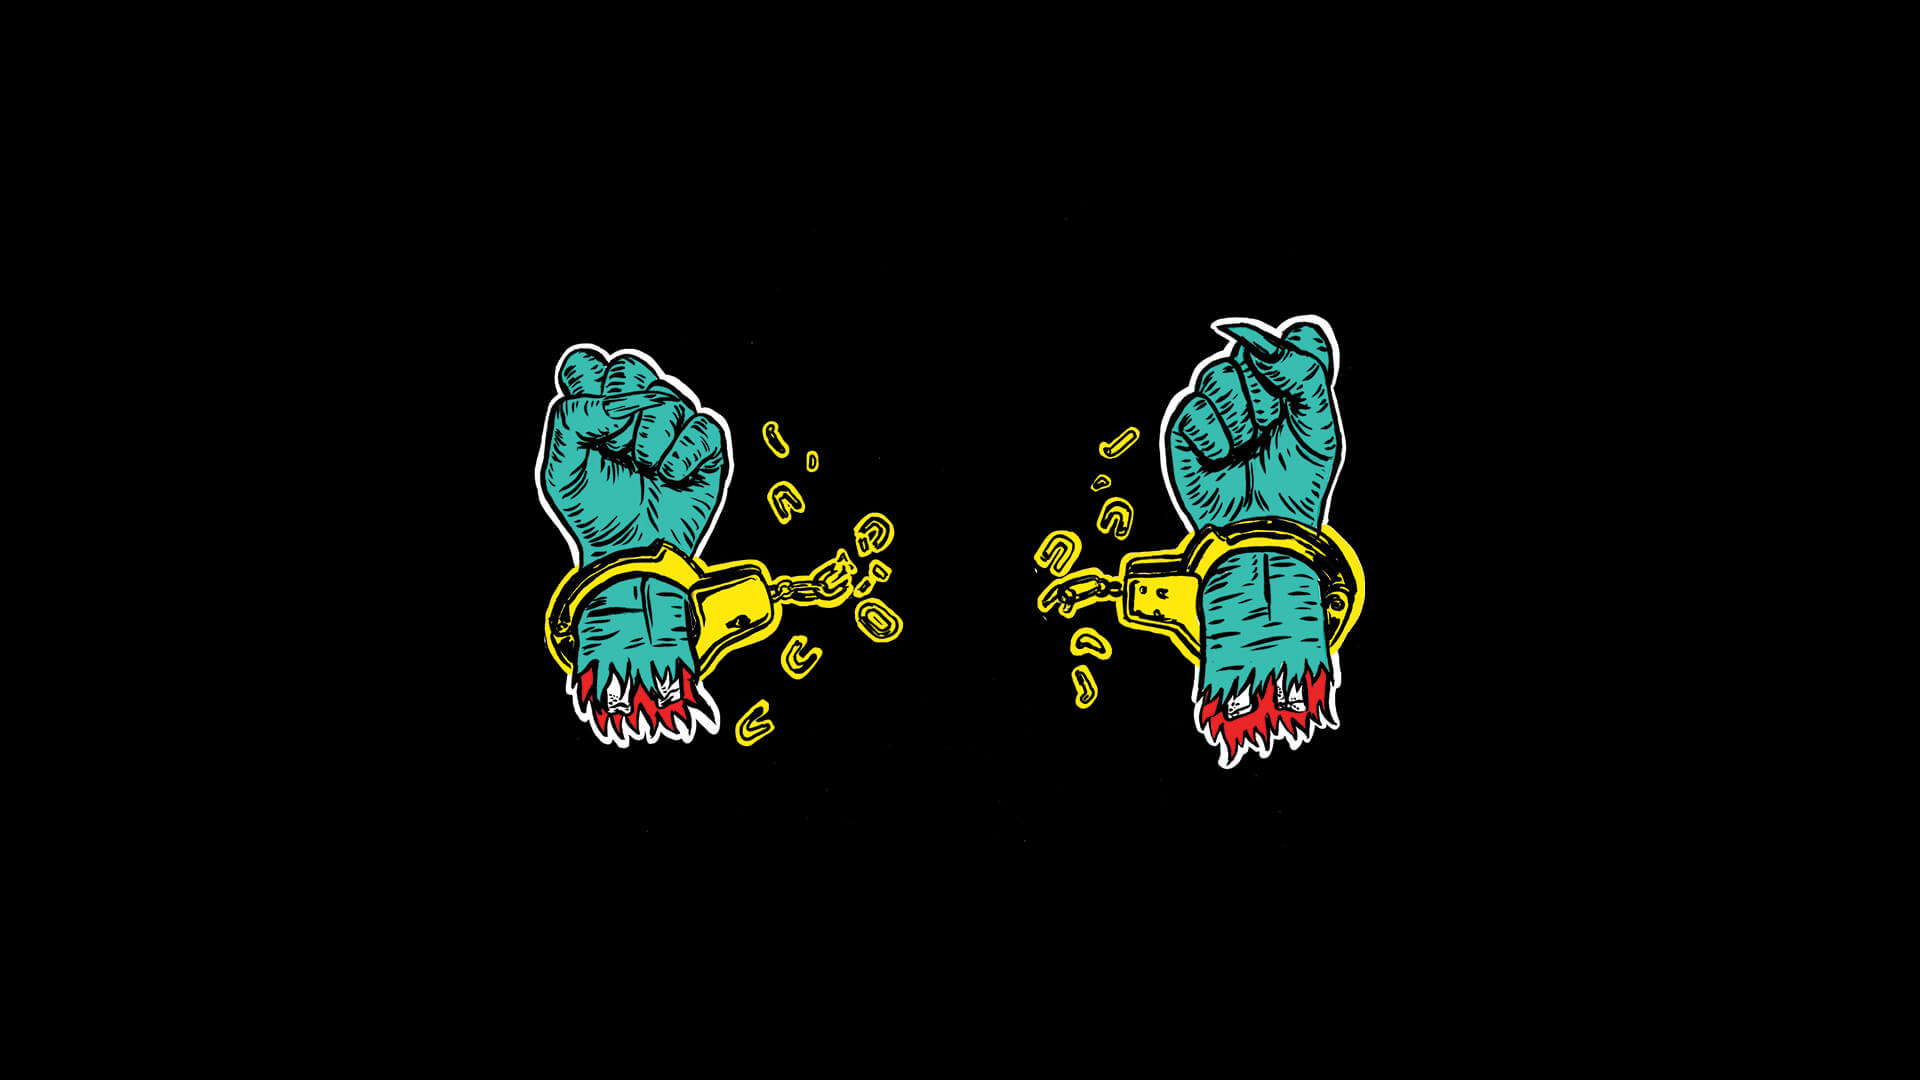 RTJ Desktop And Mobile Wallpaper Downloads   Run The Jewels 1920x1080